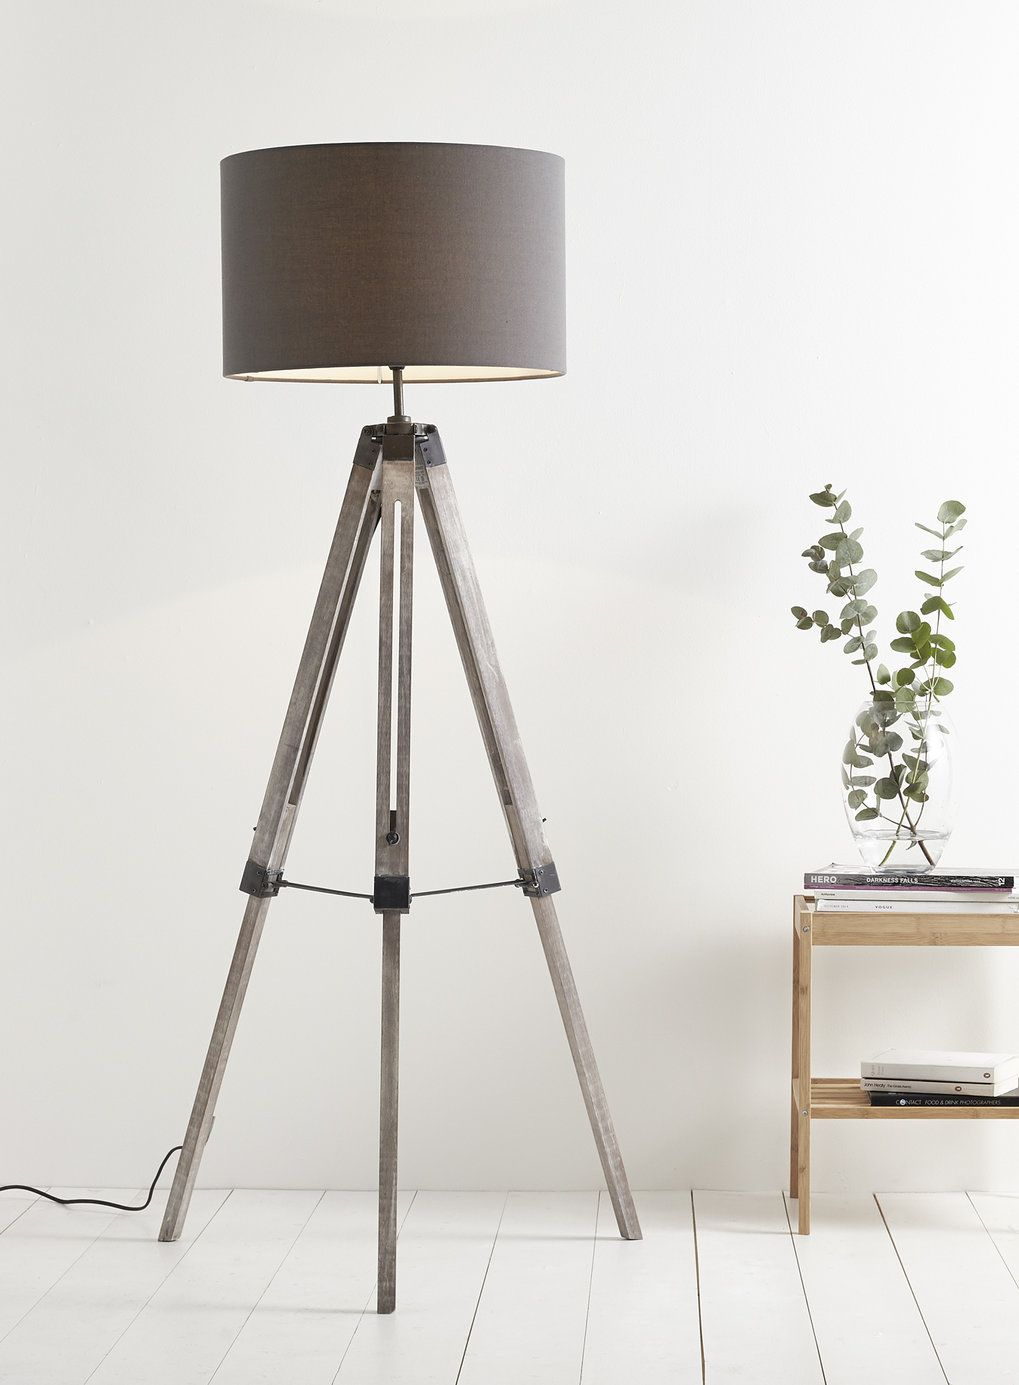 Bhs Lighting Floor Lamps: Harley Tripod Floor Lamp - floor lamps - Home, Lighting & Furniture - BHS,Lighting